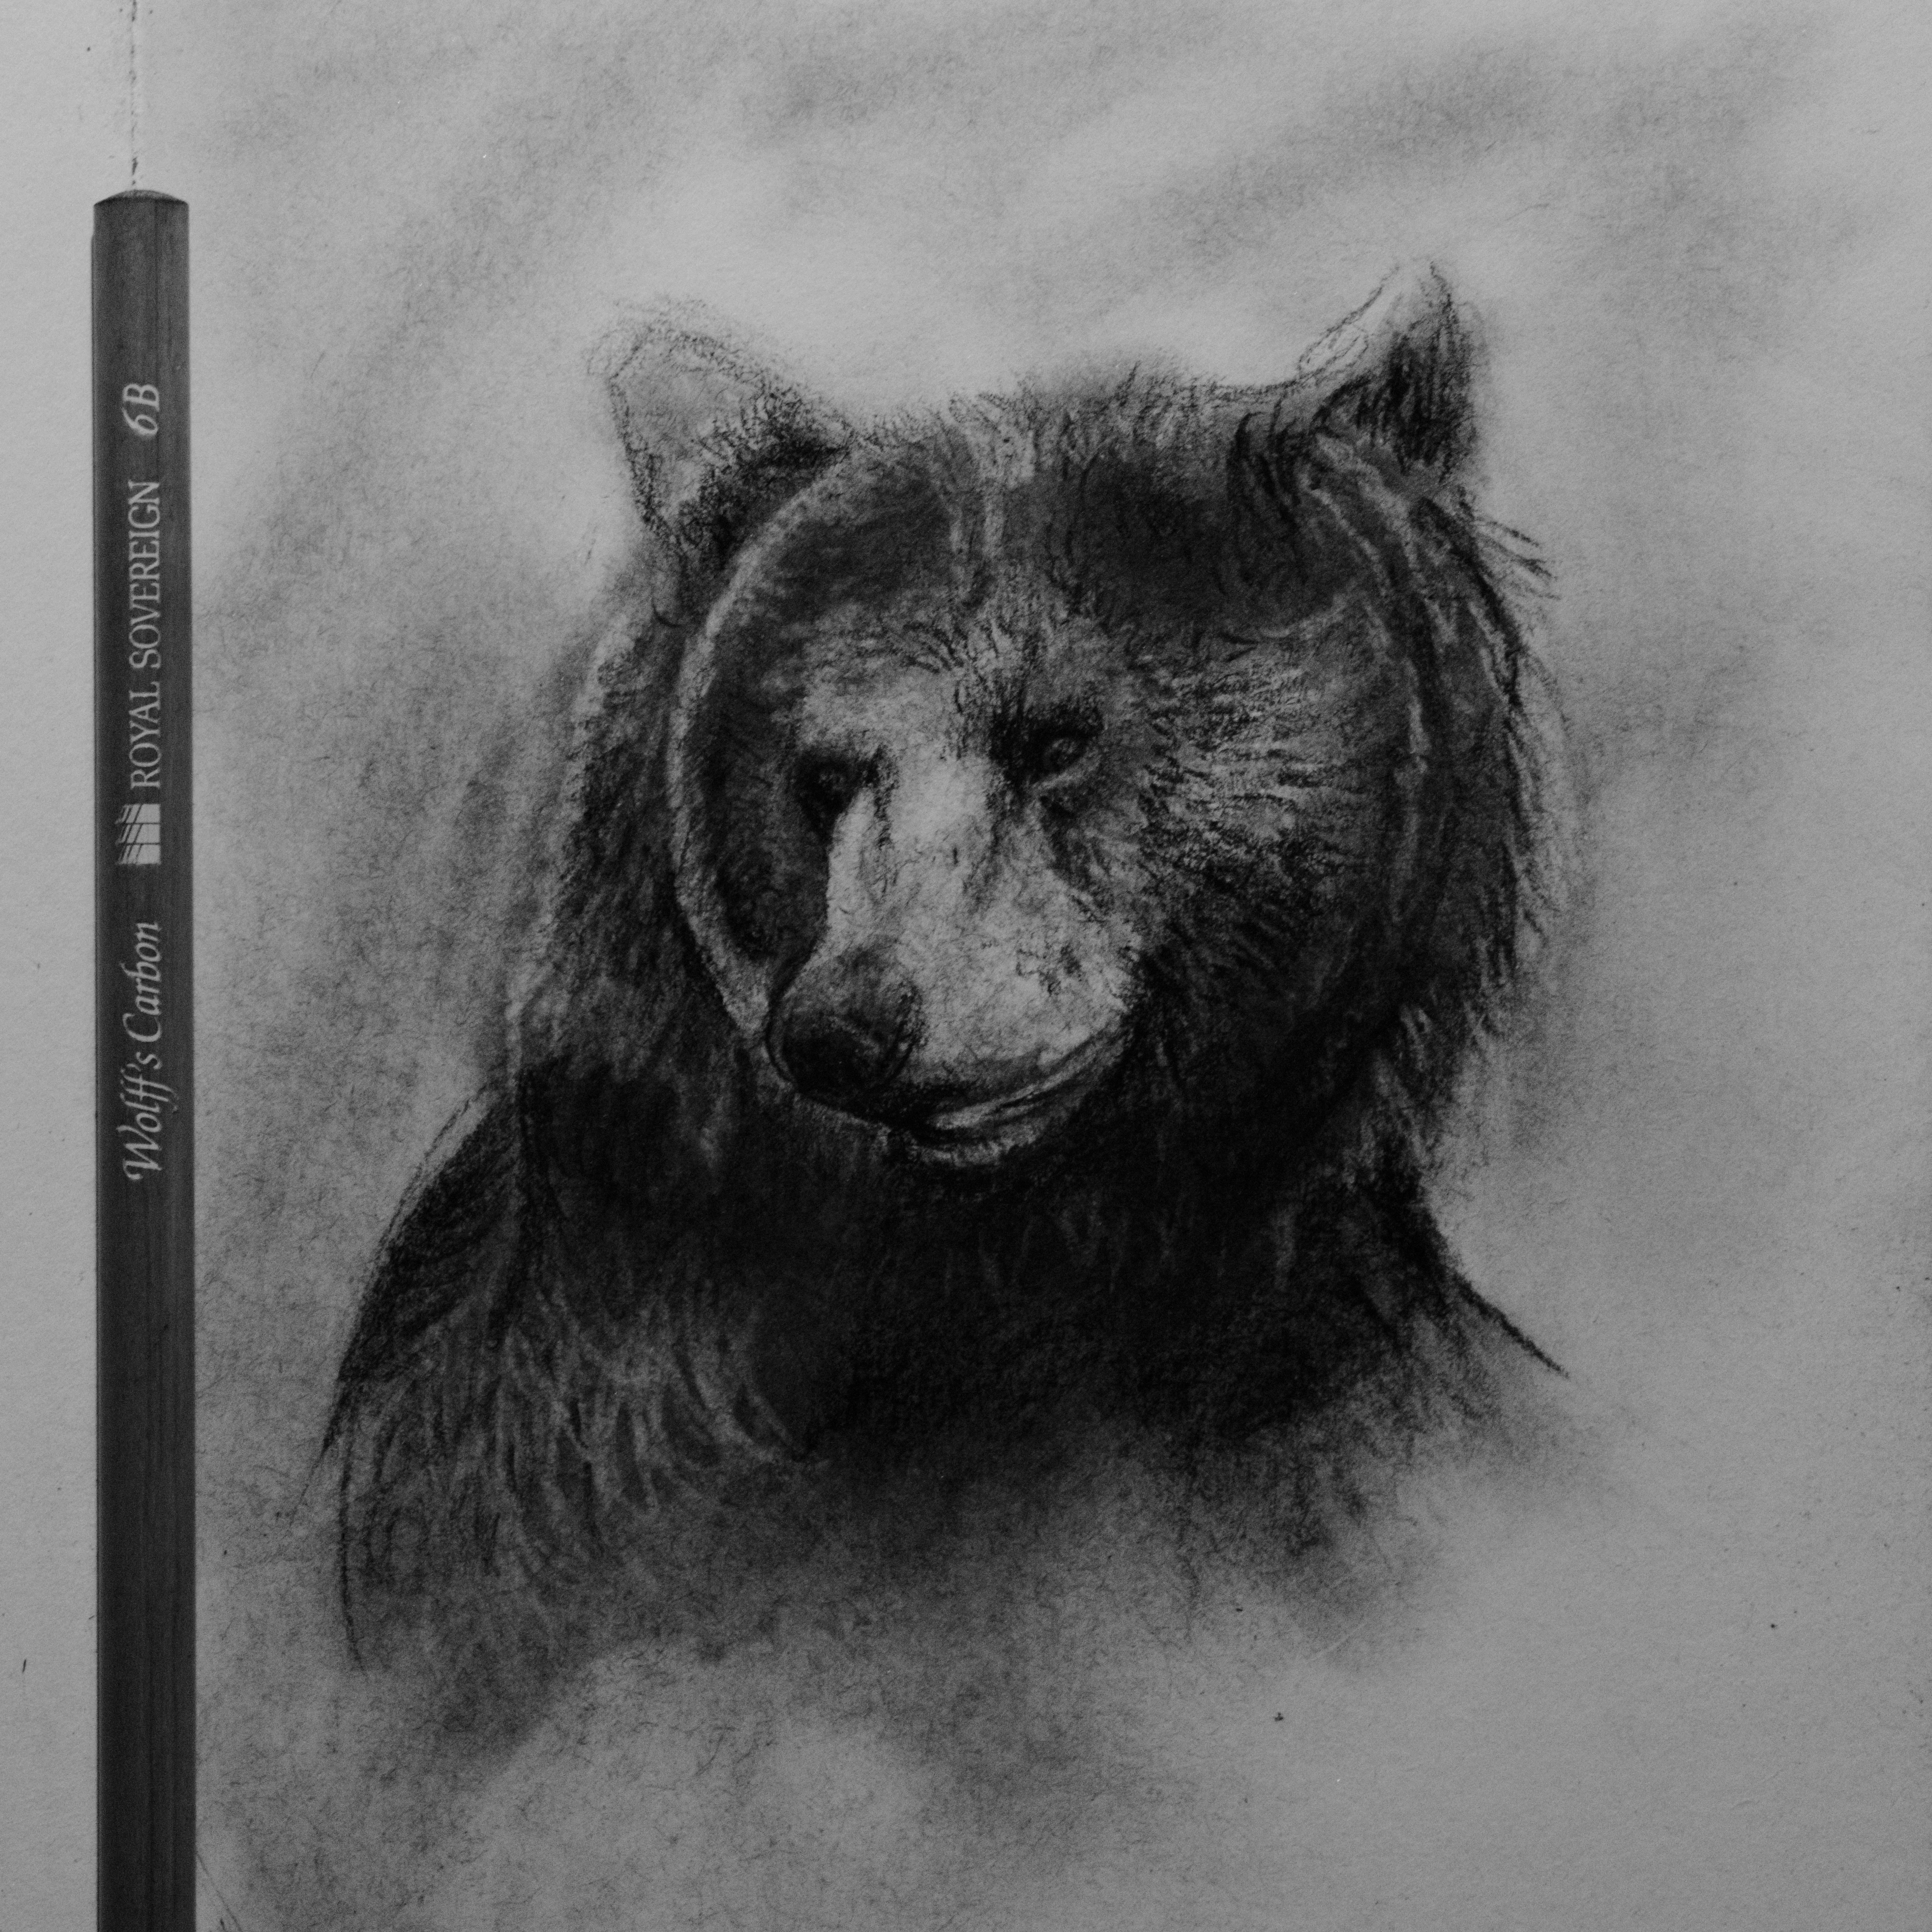 Sketch using carbon pencil and eraser only these sketches are a more of a way to capture the animals essence and not too concerned about high detail